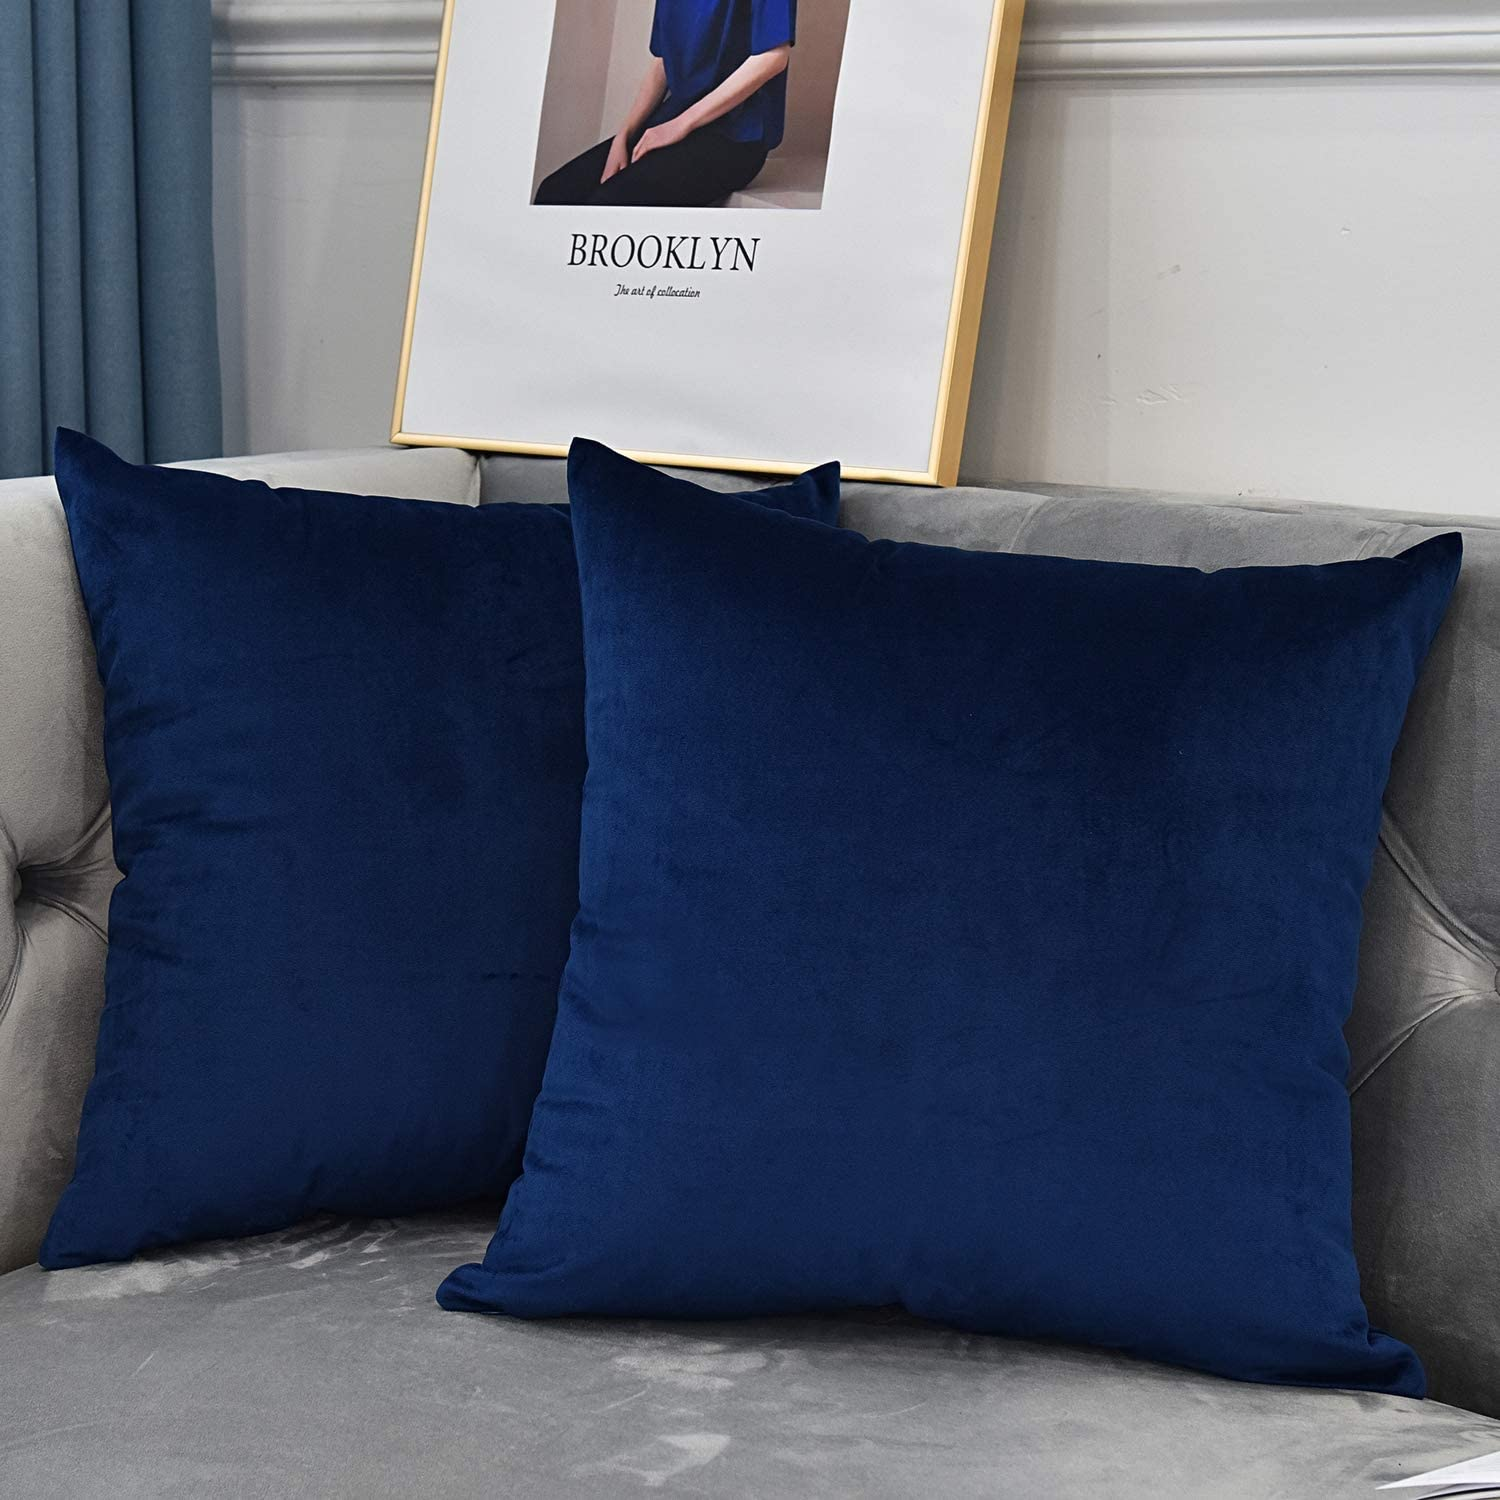 NianEr Velvet Square Throw Pillow Covers Set of 2 Soft Solid Fall Winter Decorative Couch Cushion Pillow Cases 16X16 Navy Blue